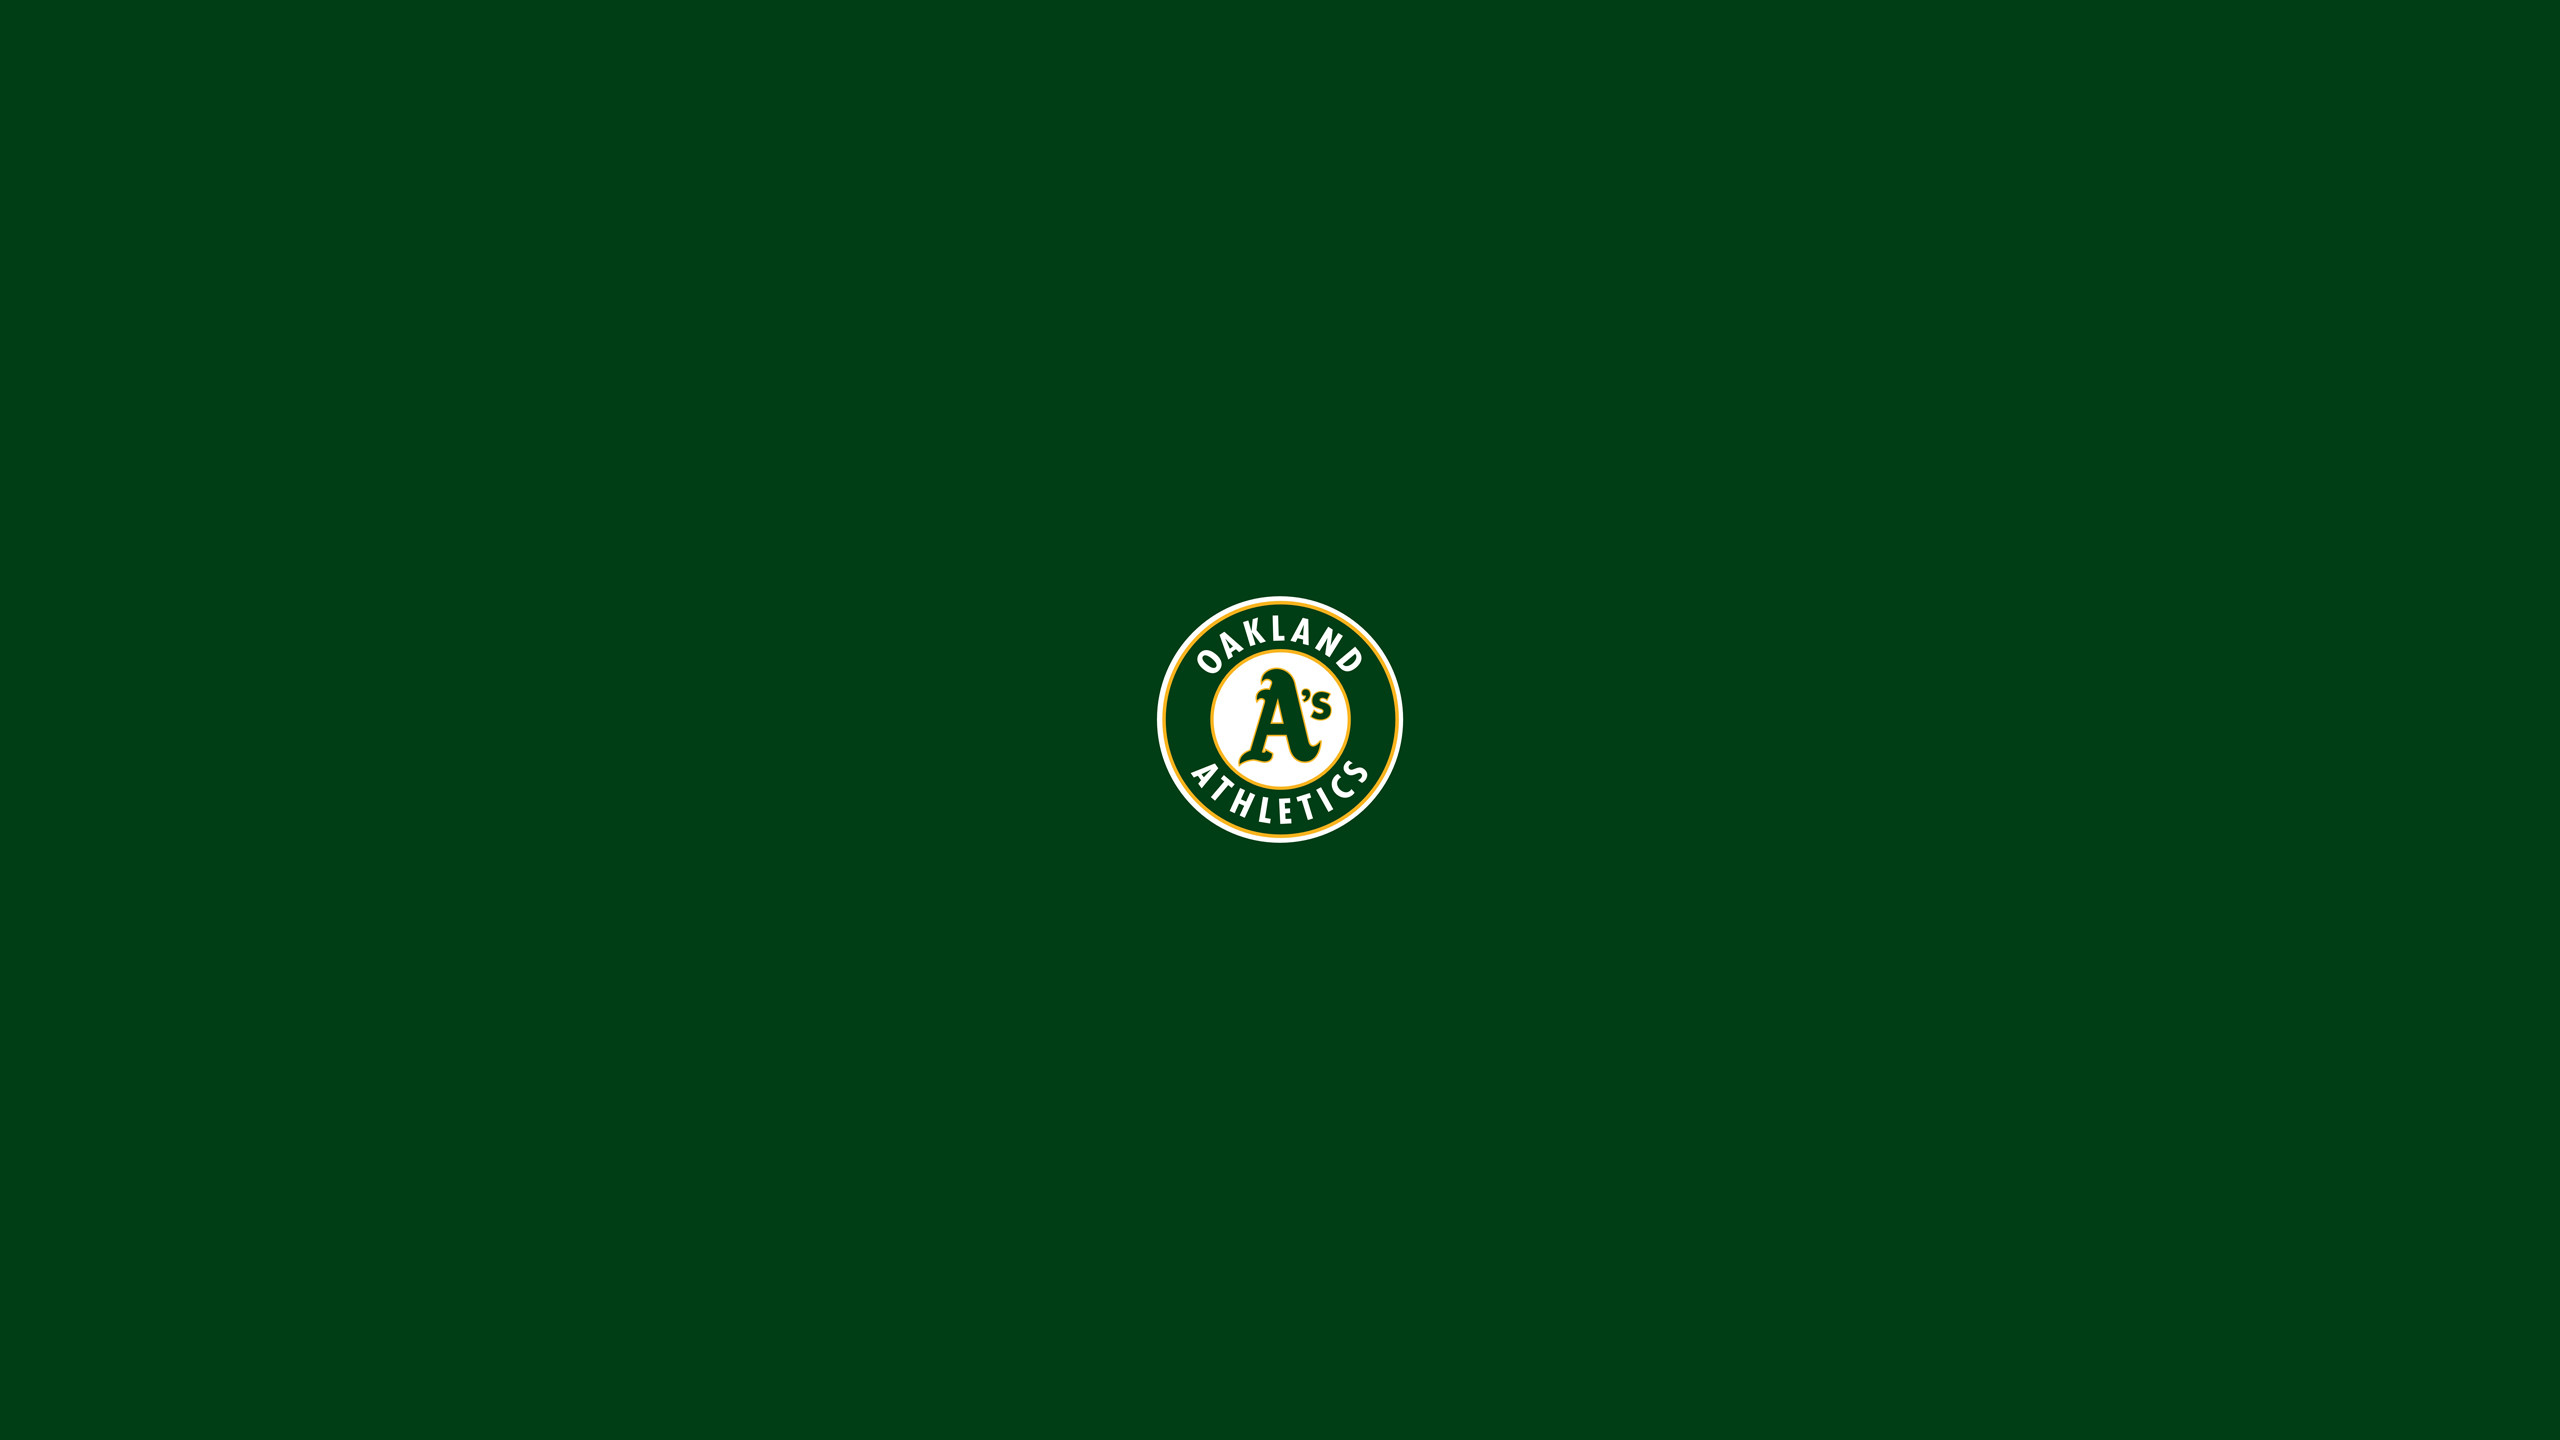 Oakland Athletics Wallpapers 67 images 2560x1440